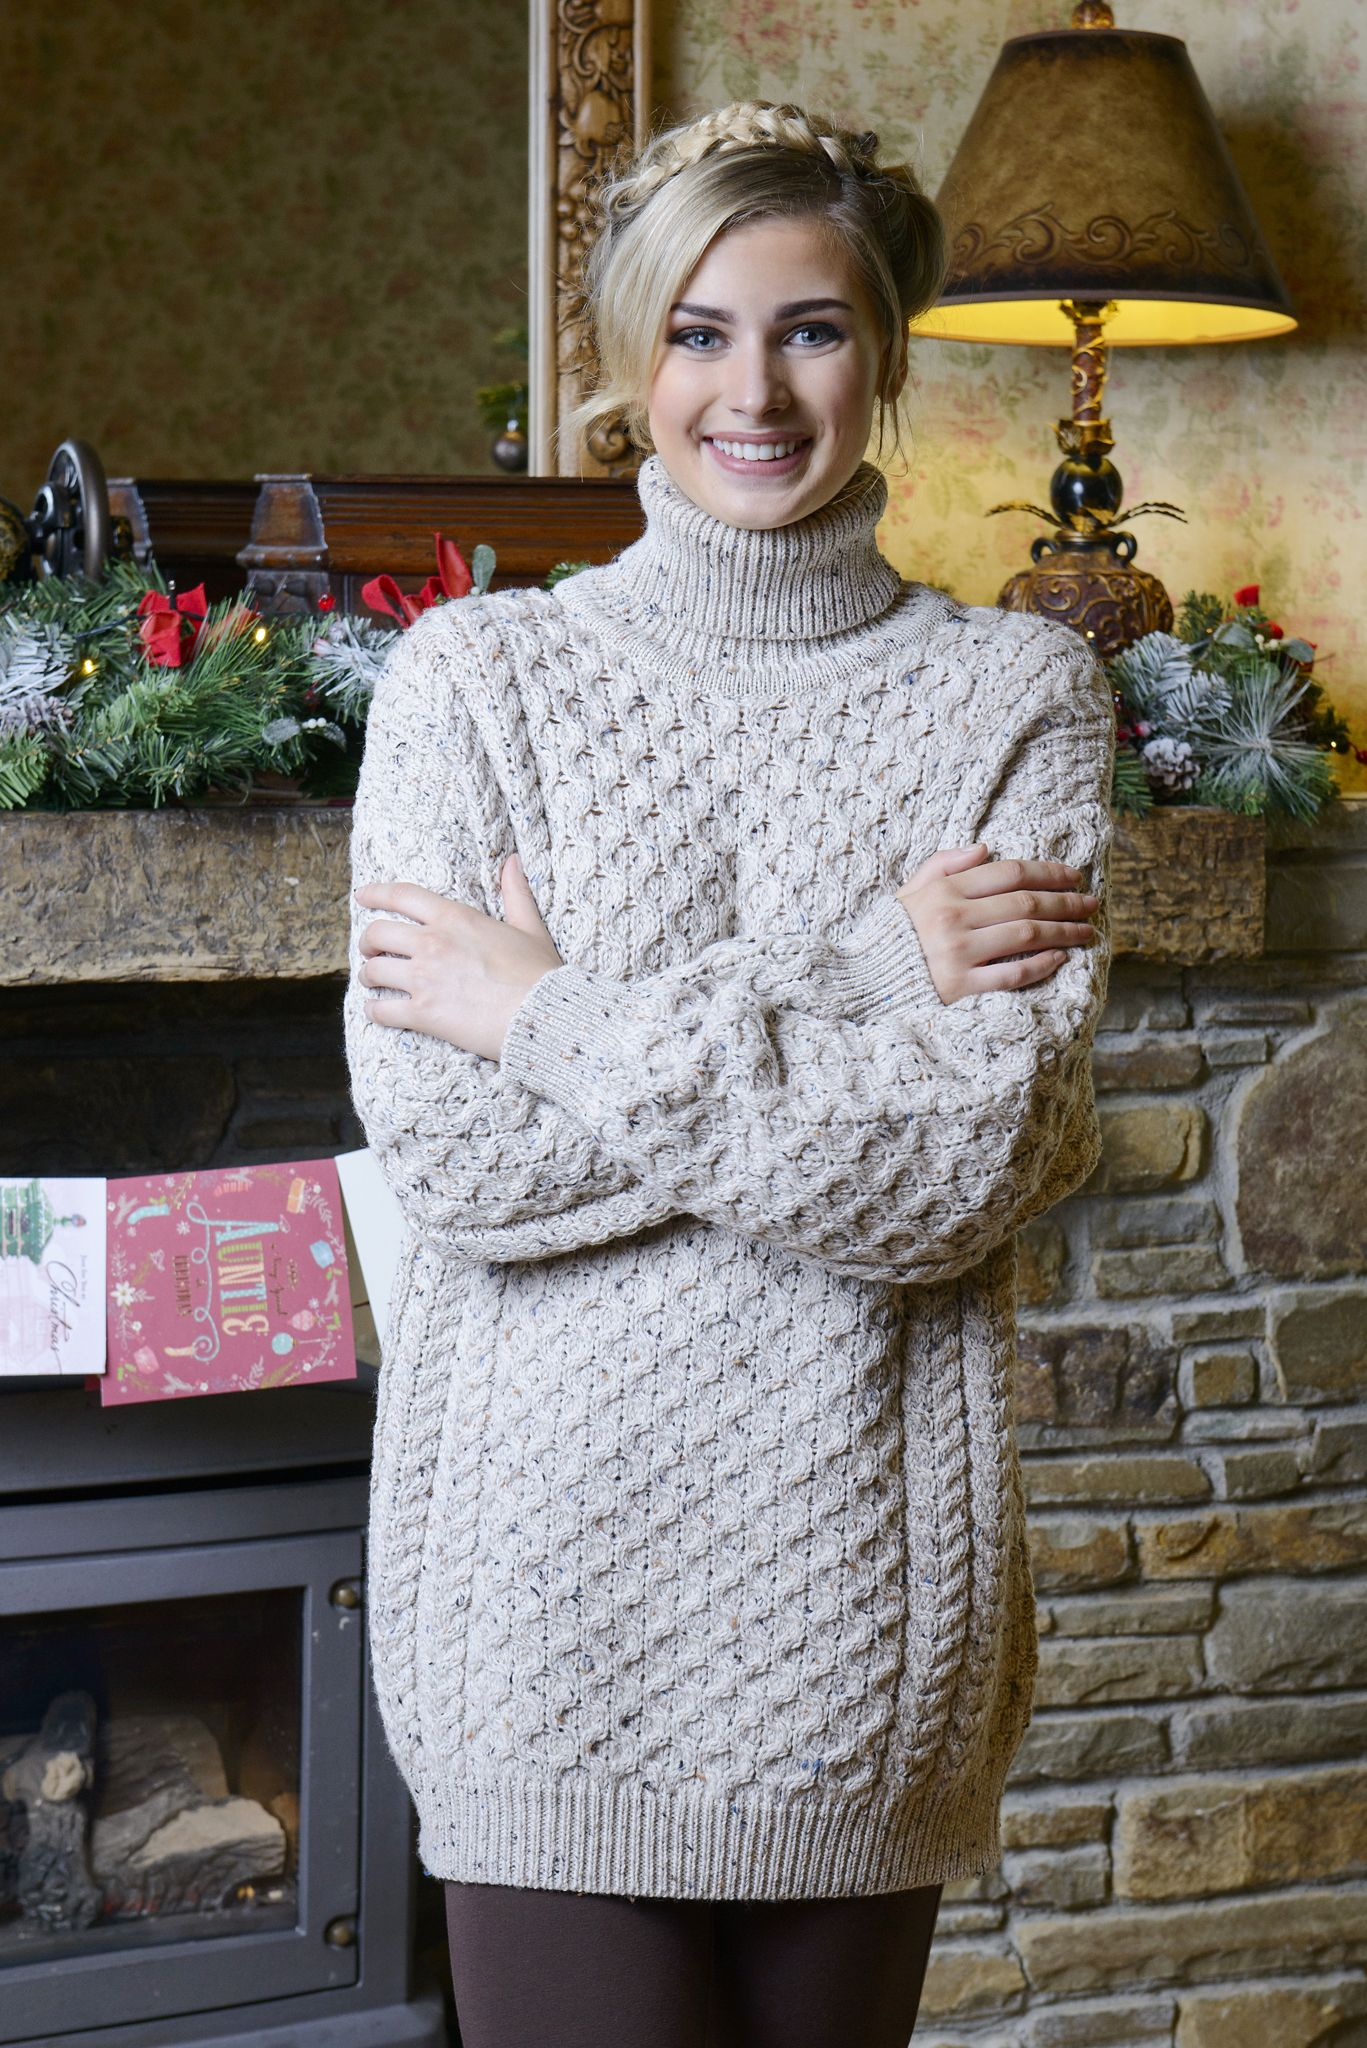 381453356b Honeycomb Turtleneck Sweater This merino wool honeycomb sweater is a  practical yet stylish sweater, suitable for all year-round. Its Fisherman  style allows ...